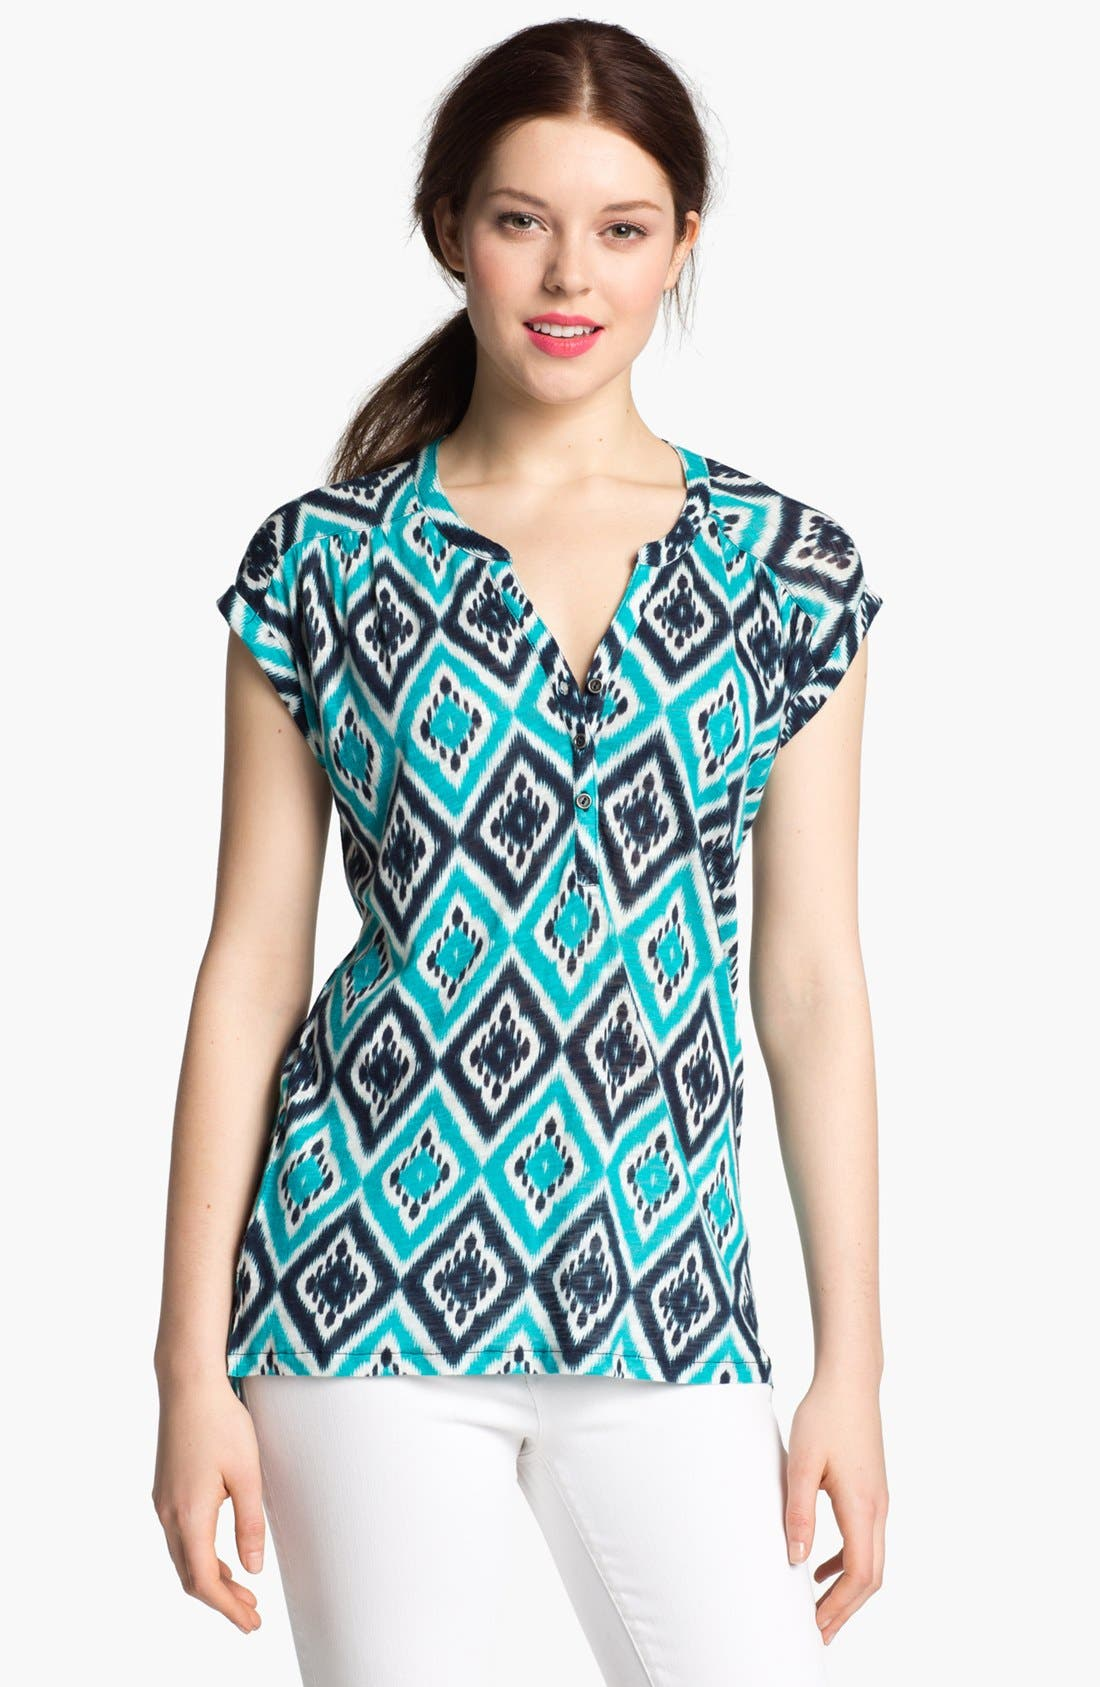 Alternate Image 1 Selected - Lucky Brand 'Ikat Diamond' Cotton Top